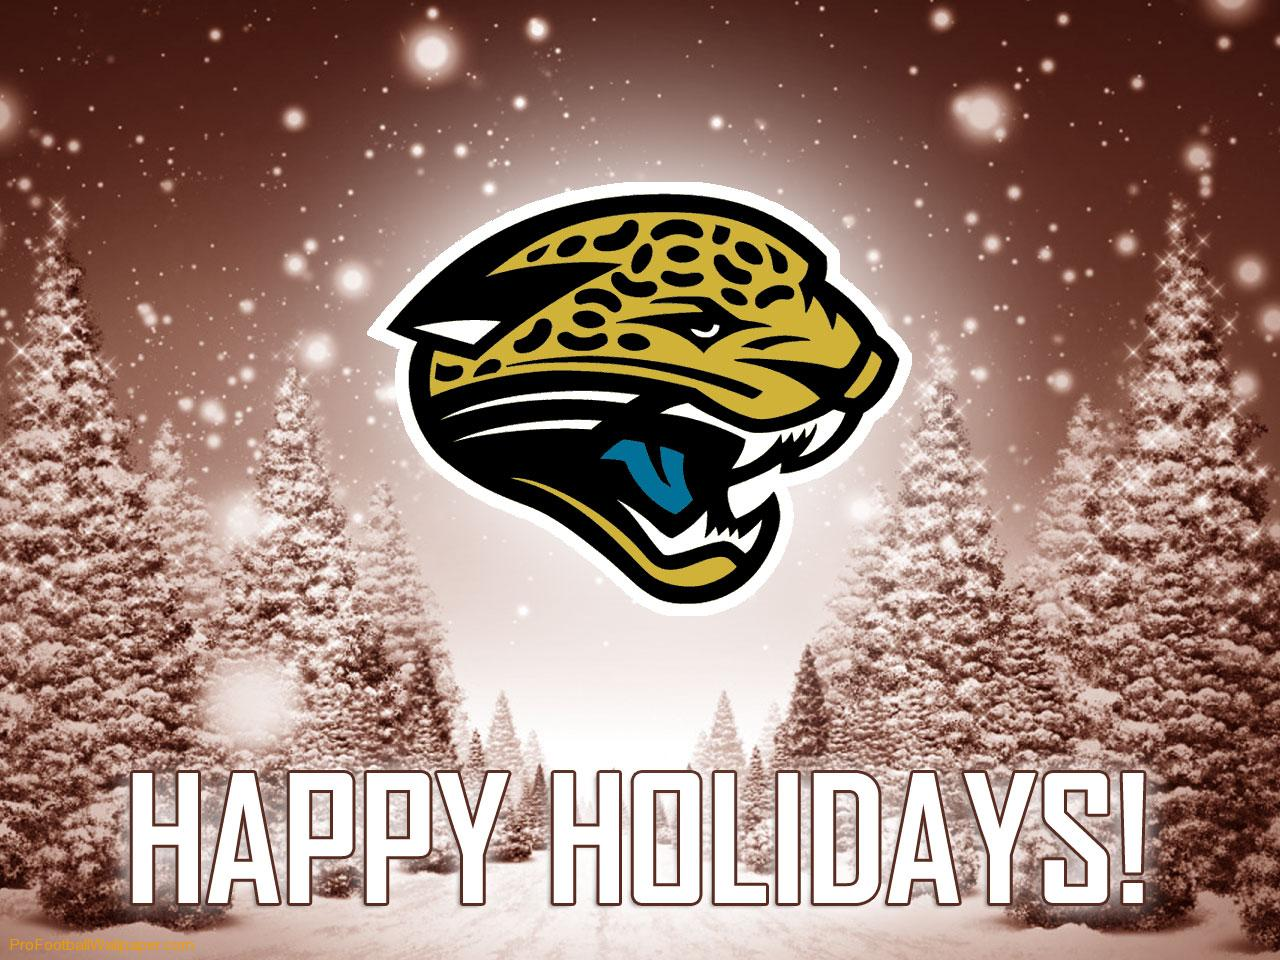 Jacksonville Jaguars Holidays Wallpaper 177506 HD Wallpaper Res 1280x960